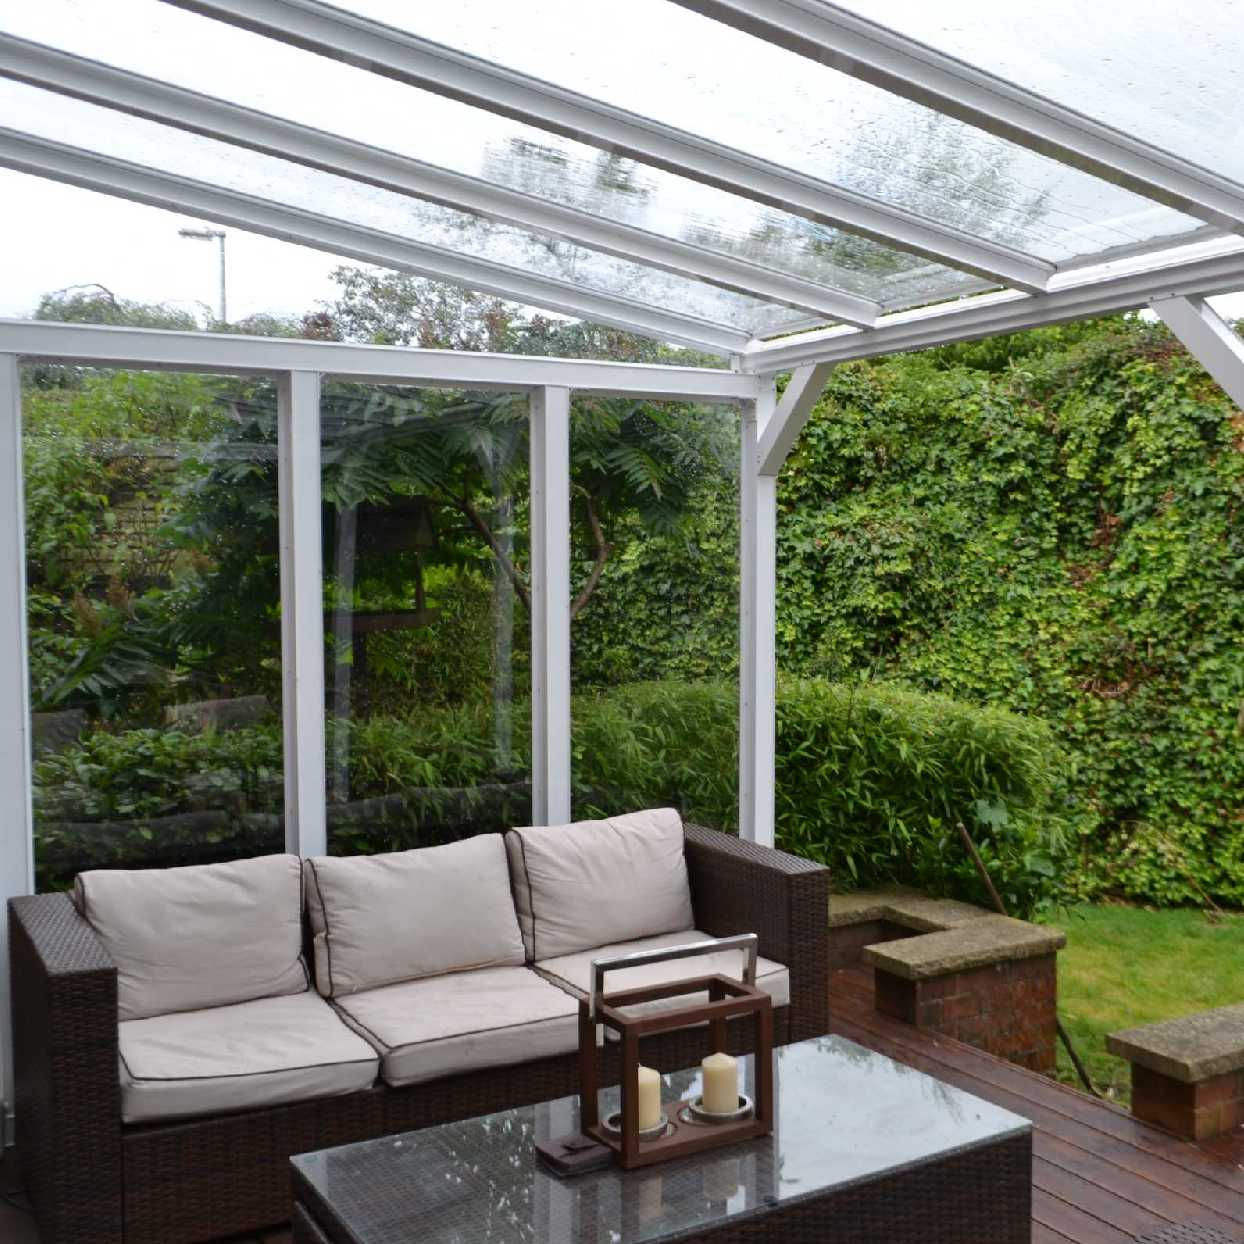 Omega Smart Lean-To Canopy UNGLAZED for 6mm Glazing - 2.8m (W) x 1.5m (P), (2) Supporting Posts